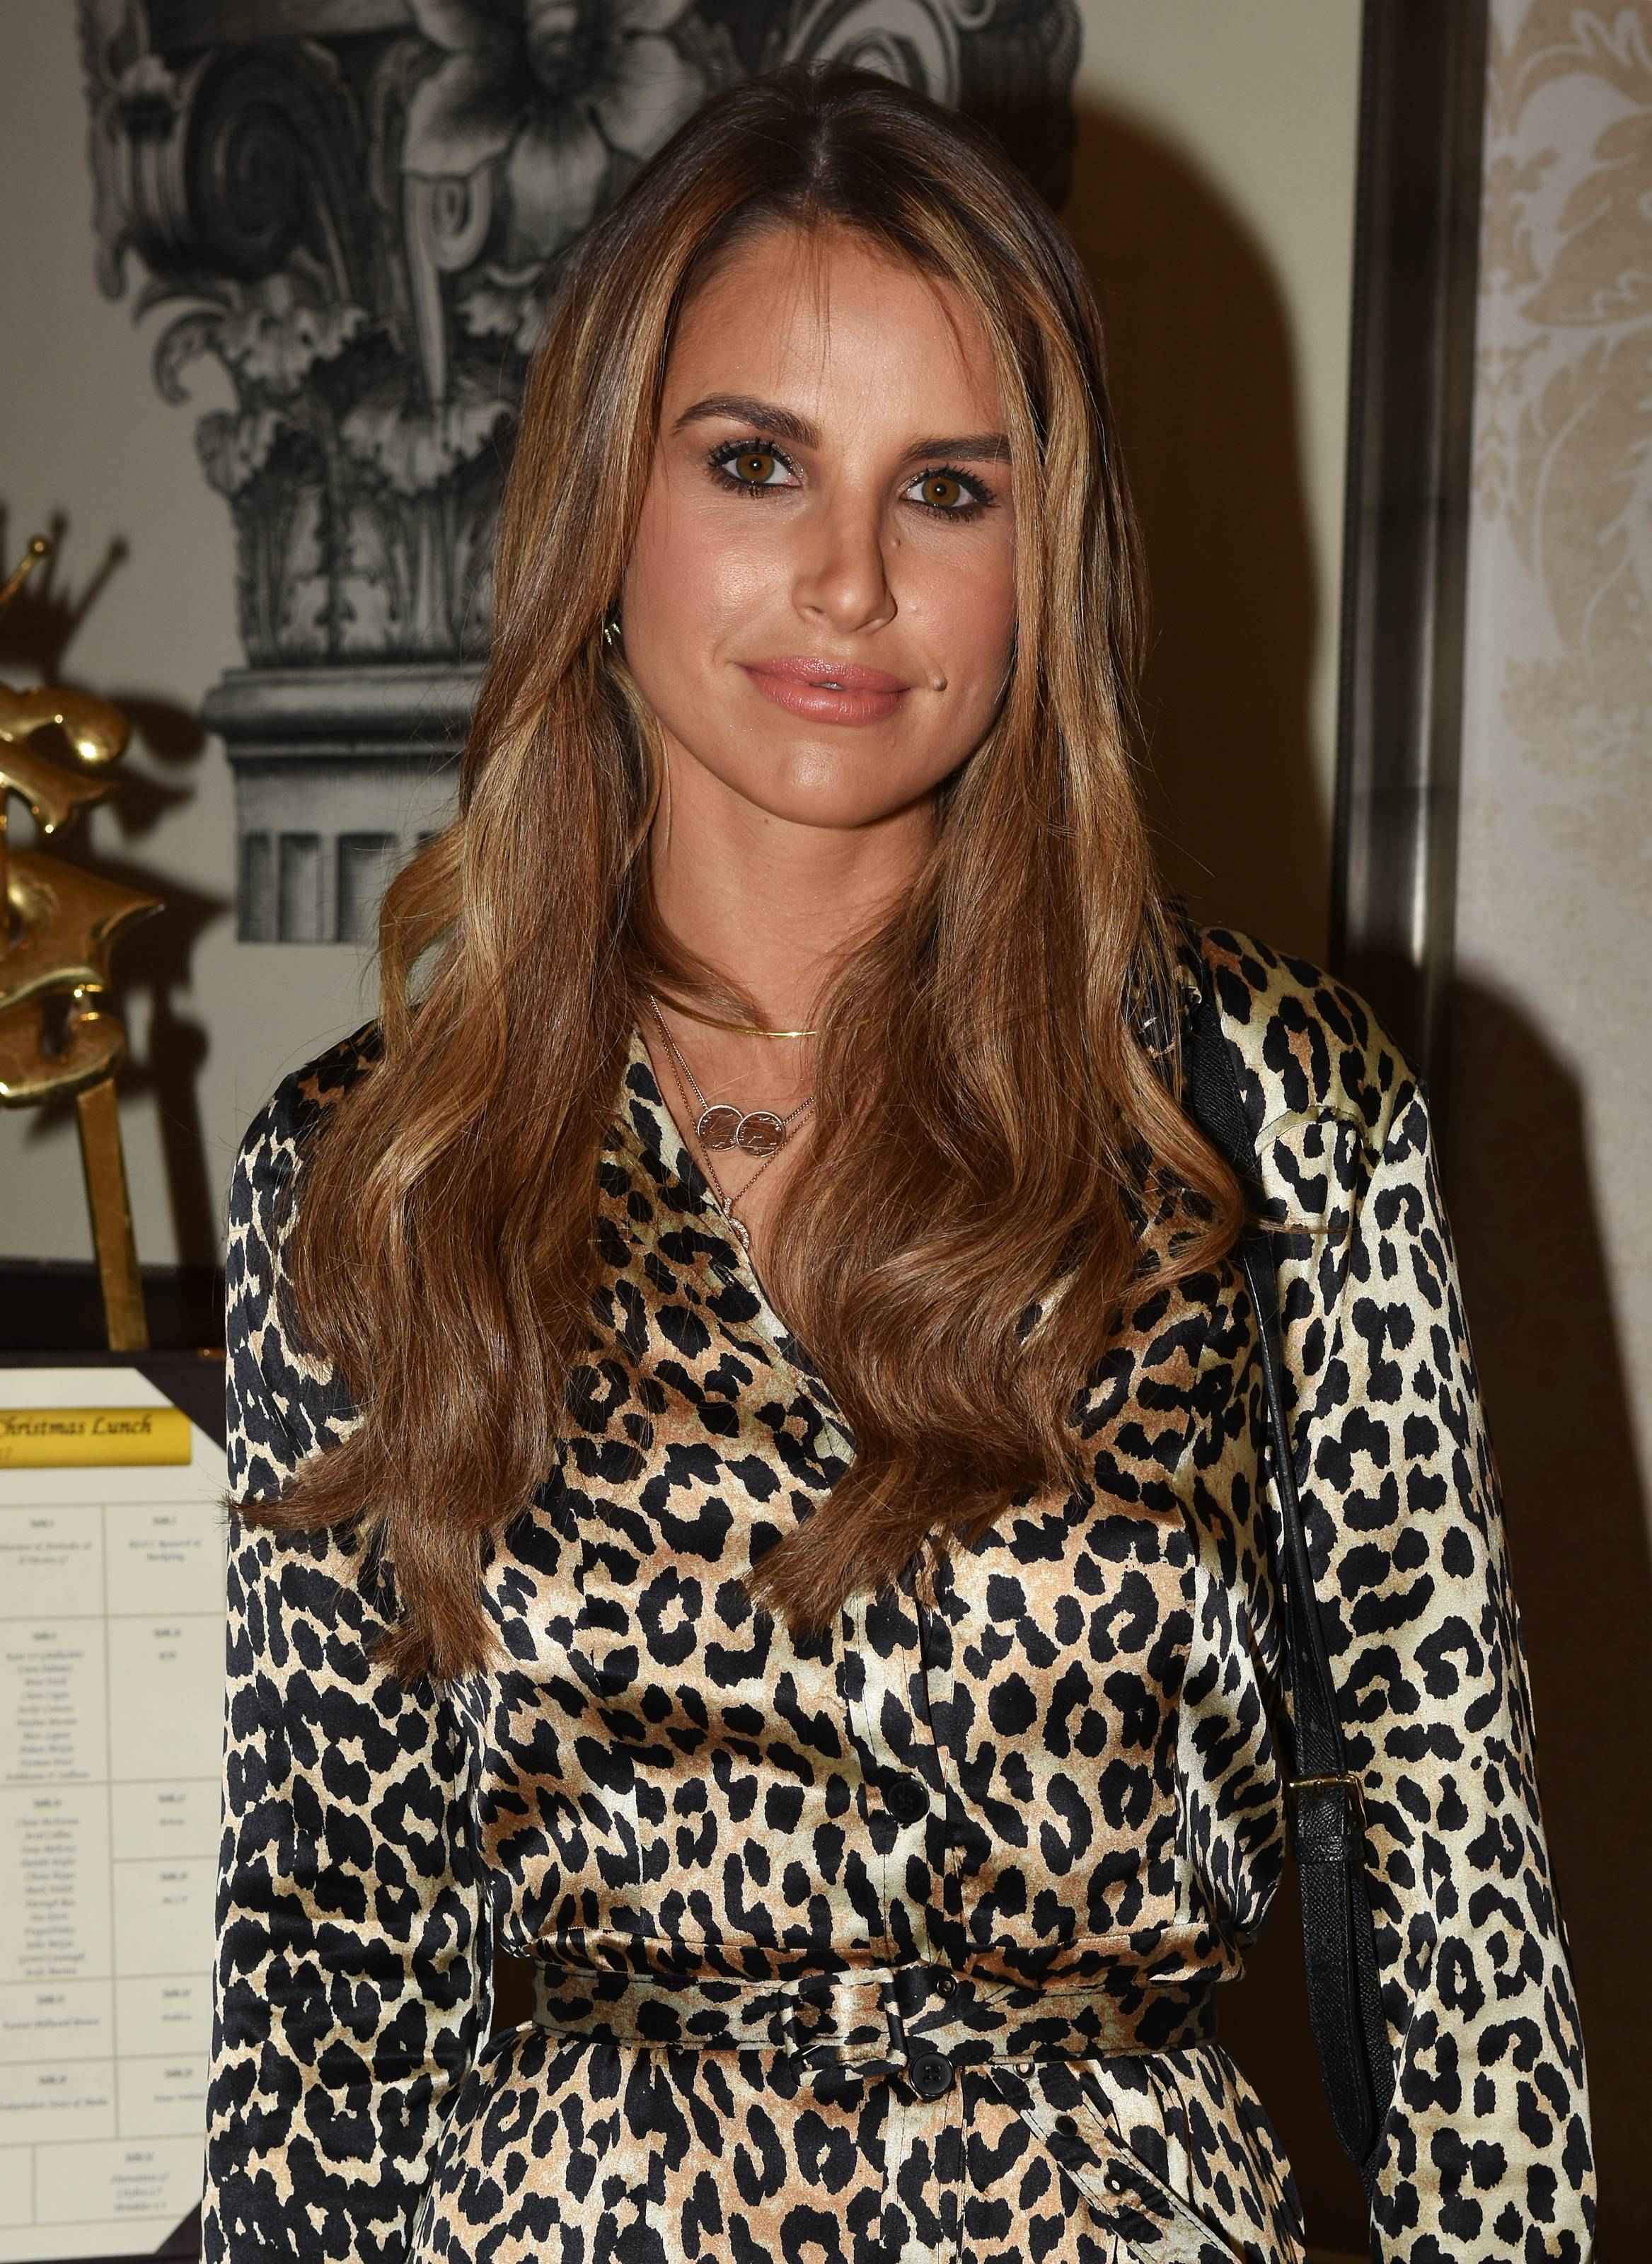 2. Vogue Williams. VIPIrelandPicture-Ref187263.jpg